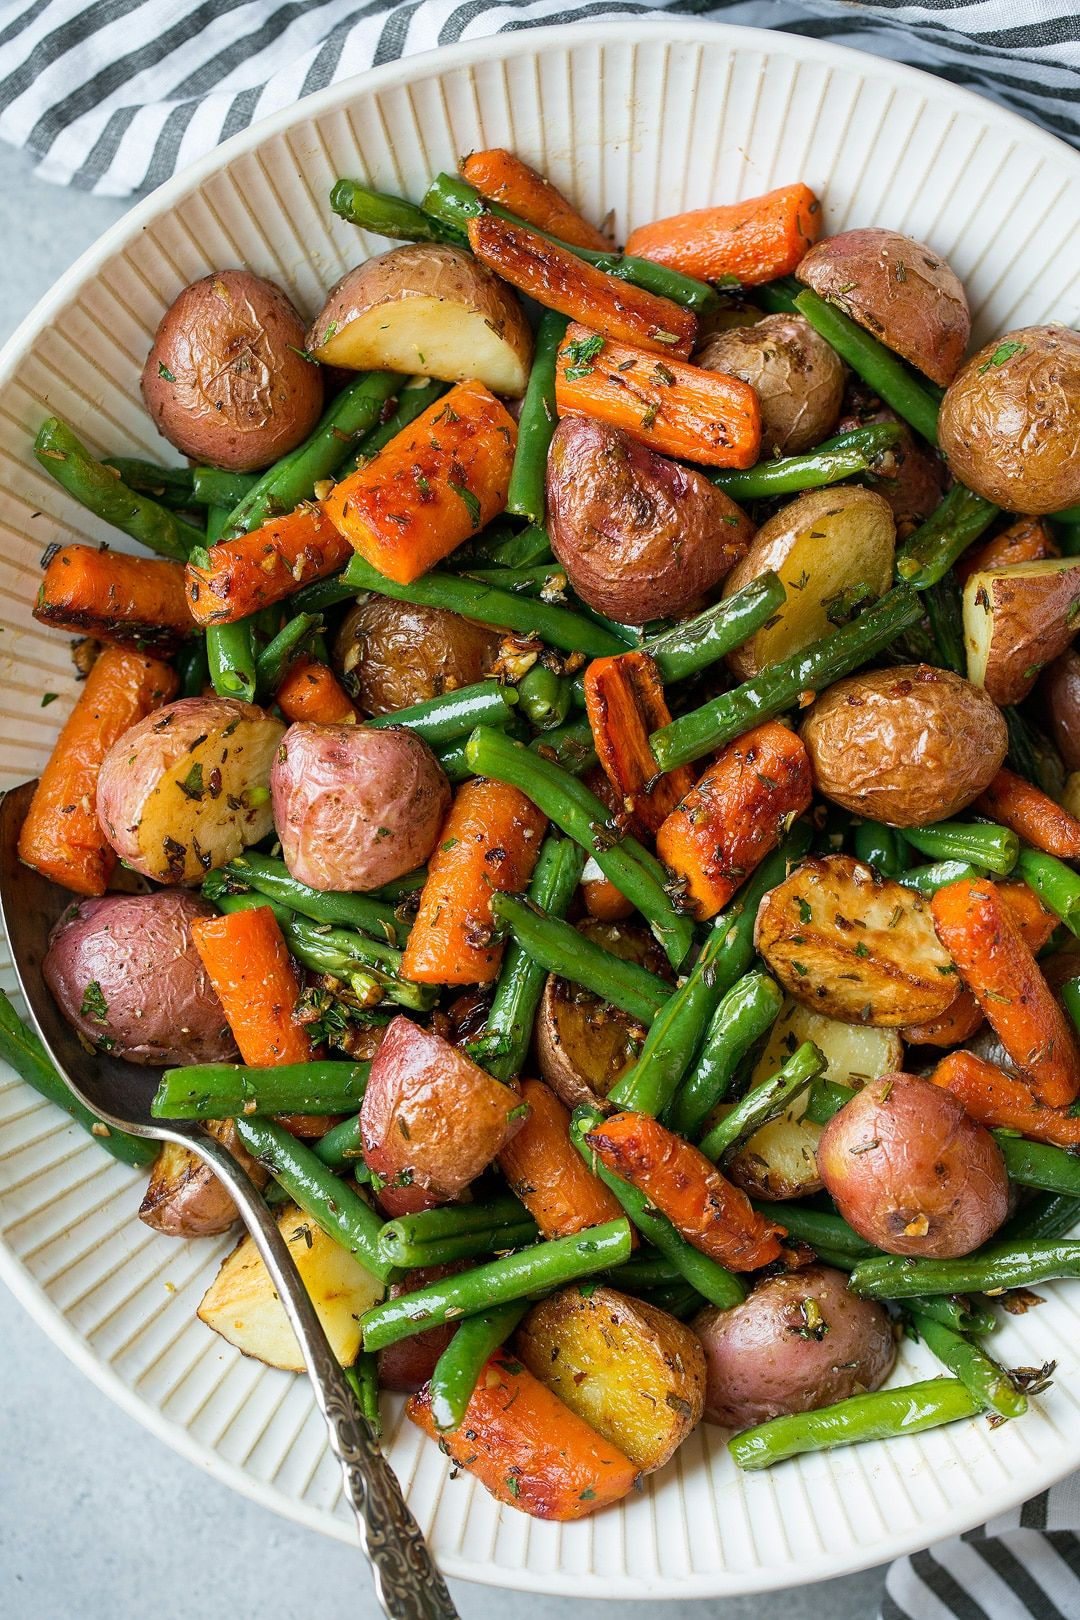 Roasted Vegetables with Garlic and Herbs - Cooking Classy